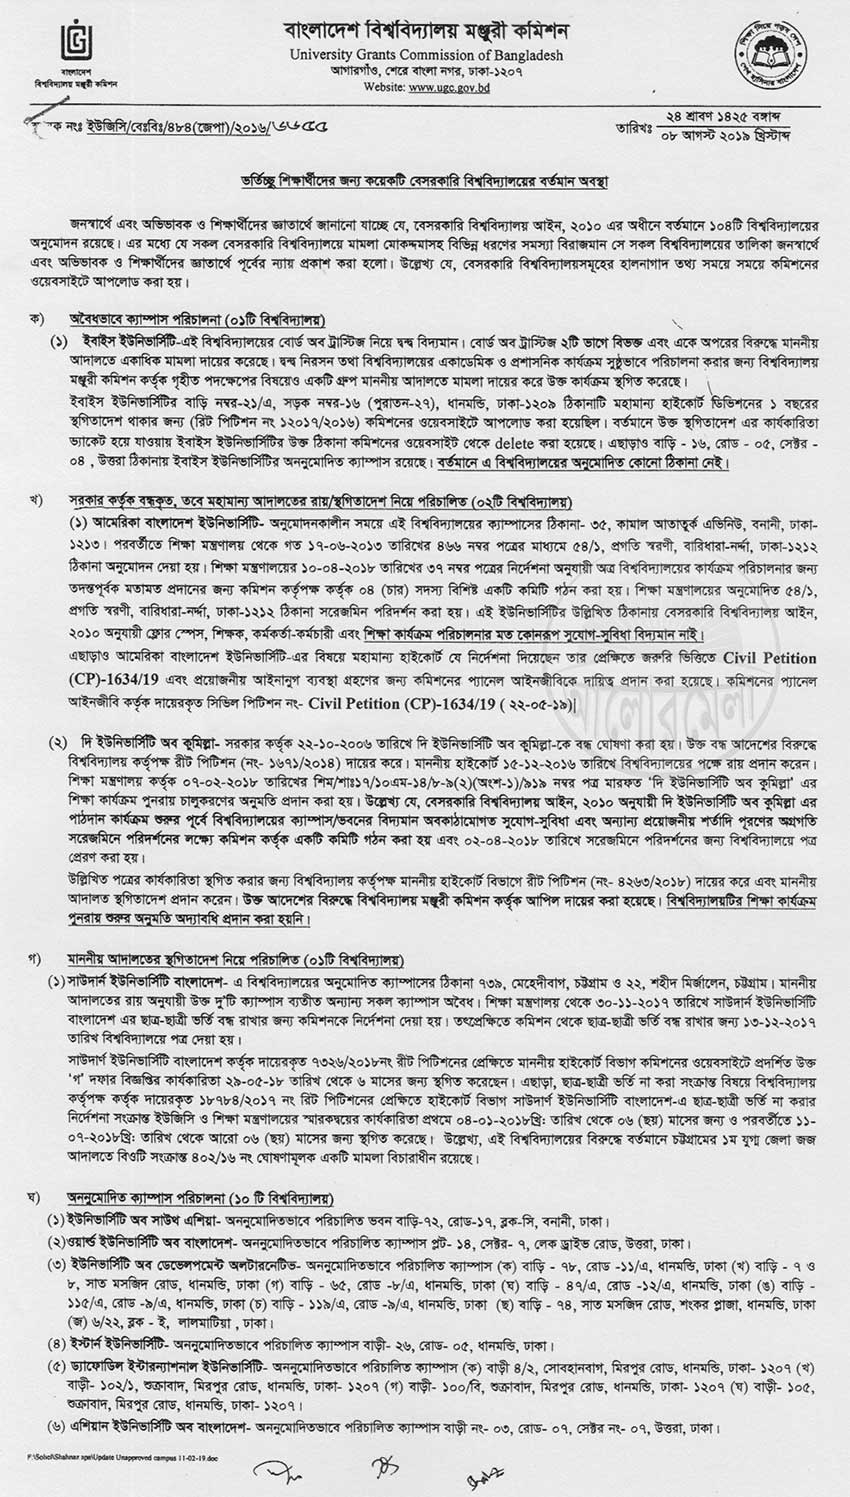 UGC Notice for Private University